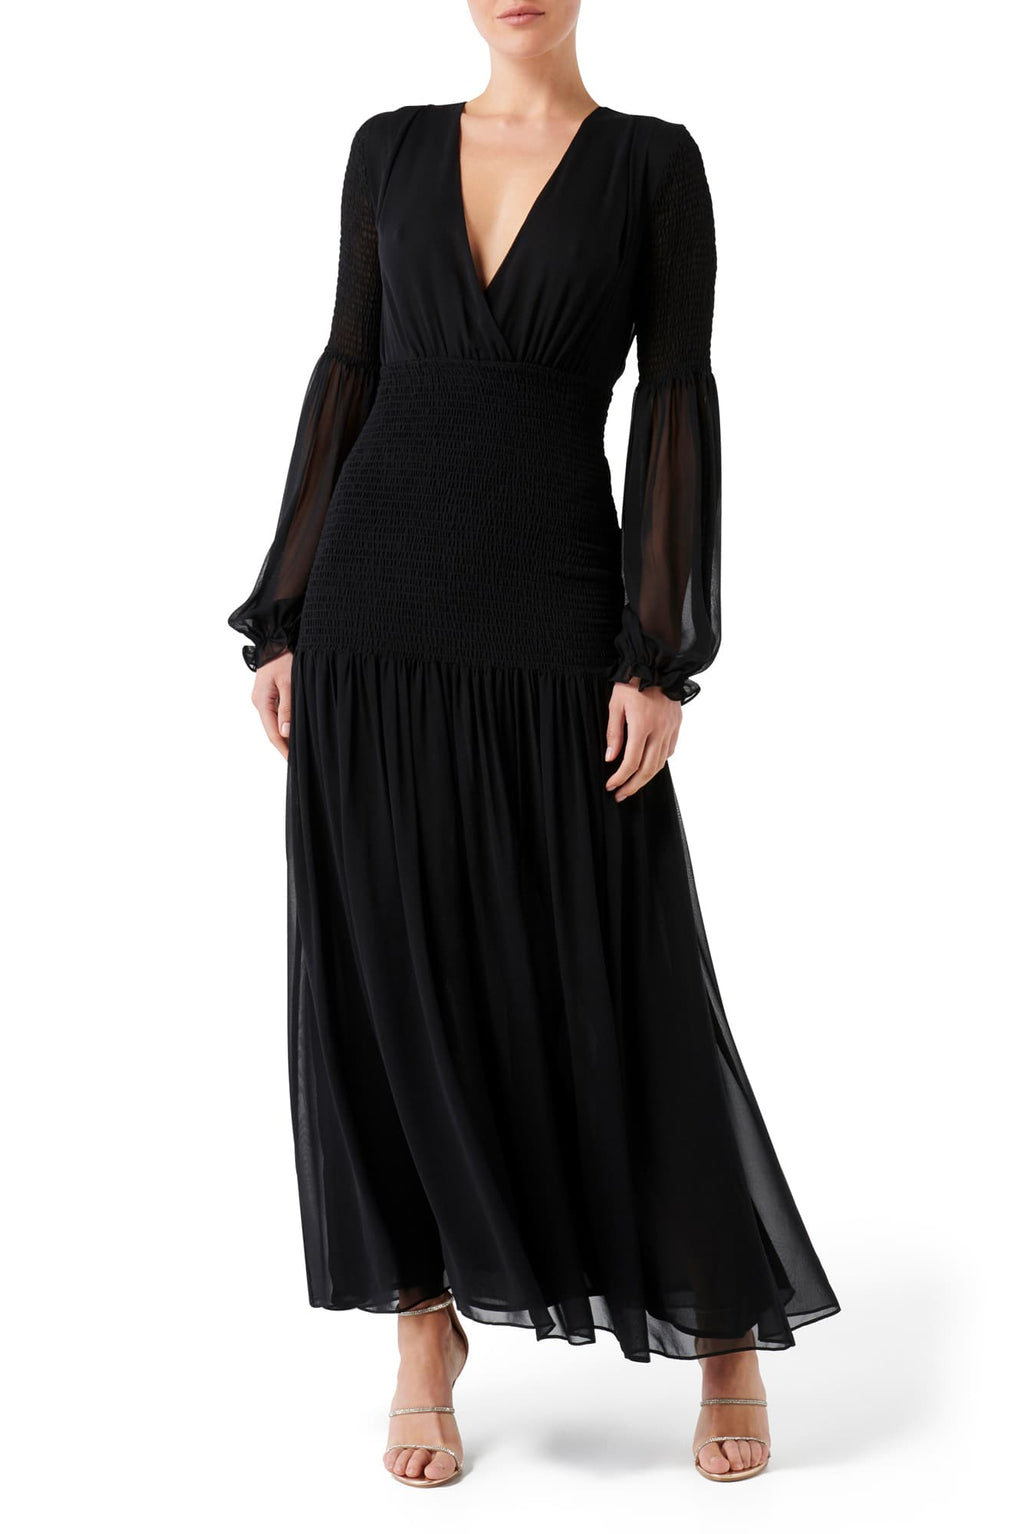 The Ithica Maxi - Black